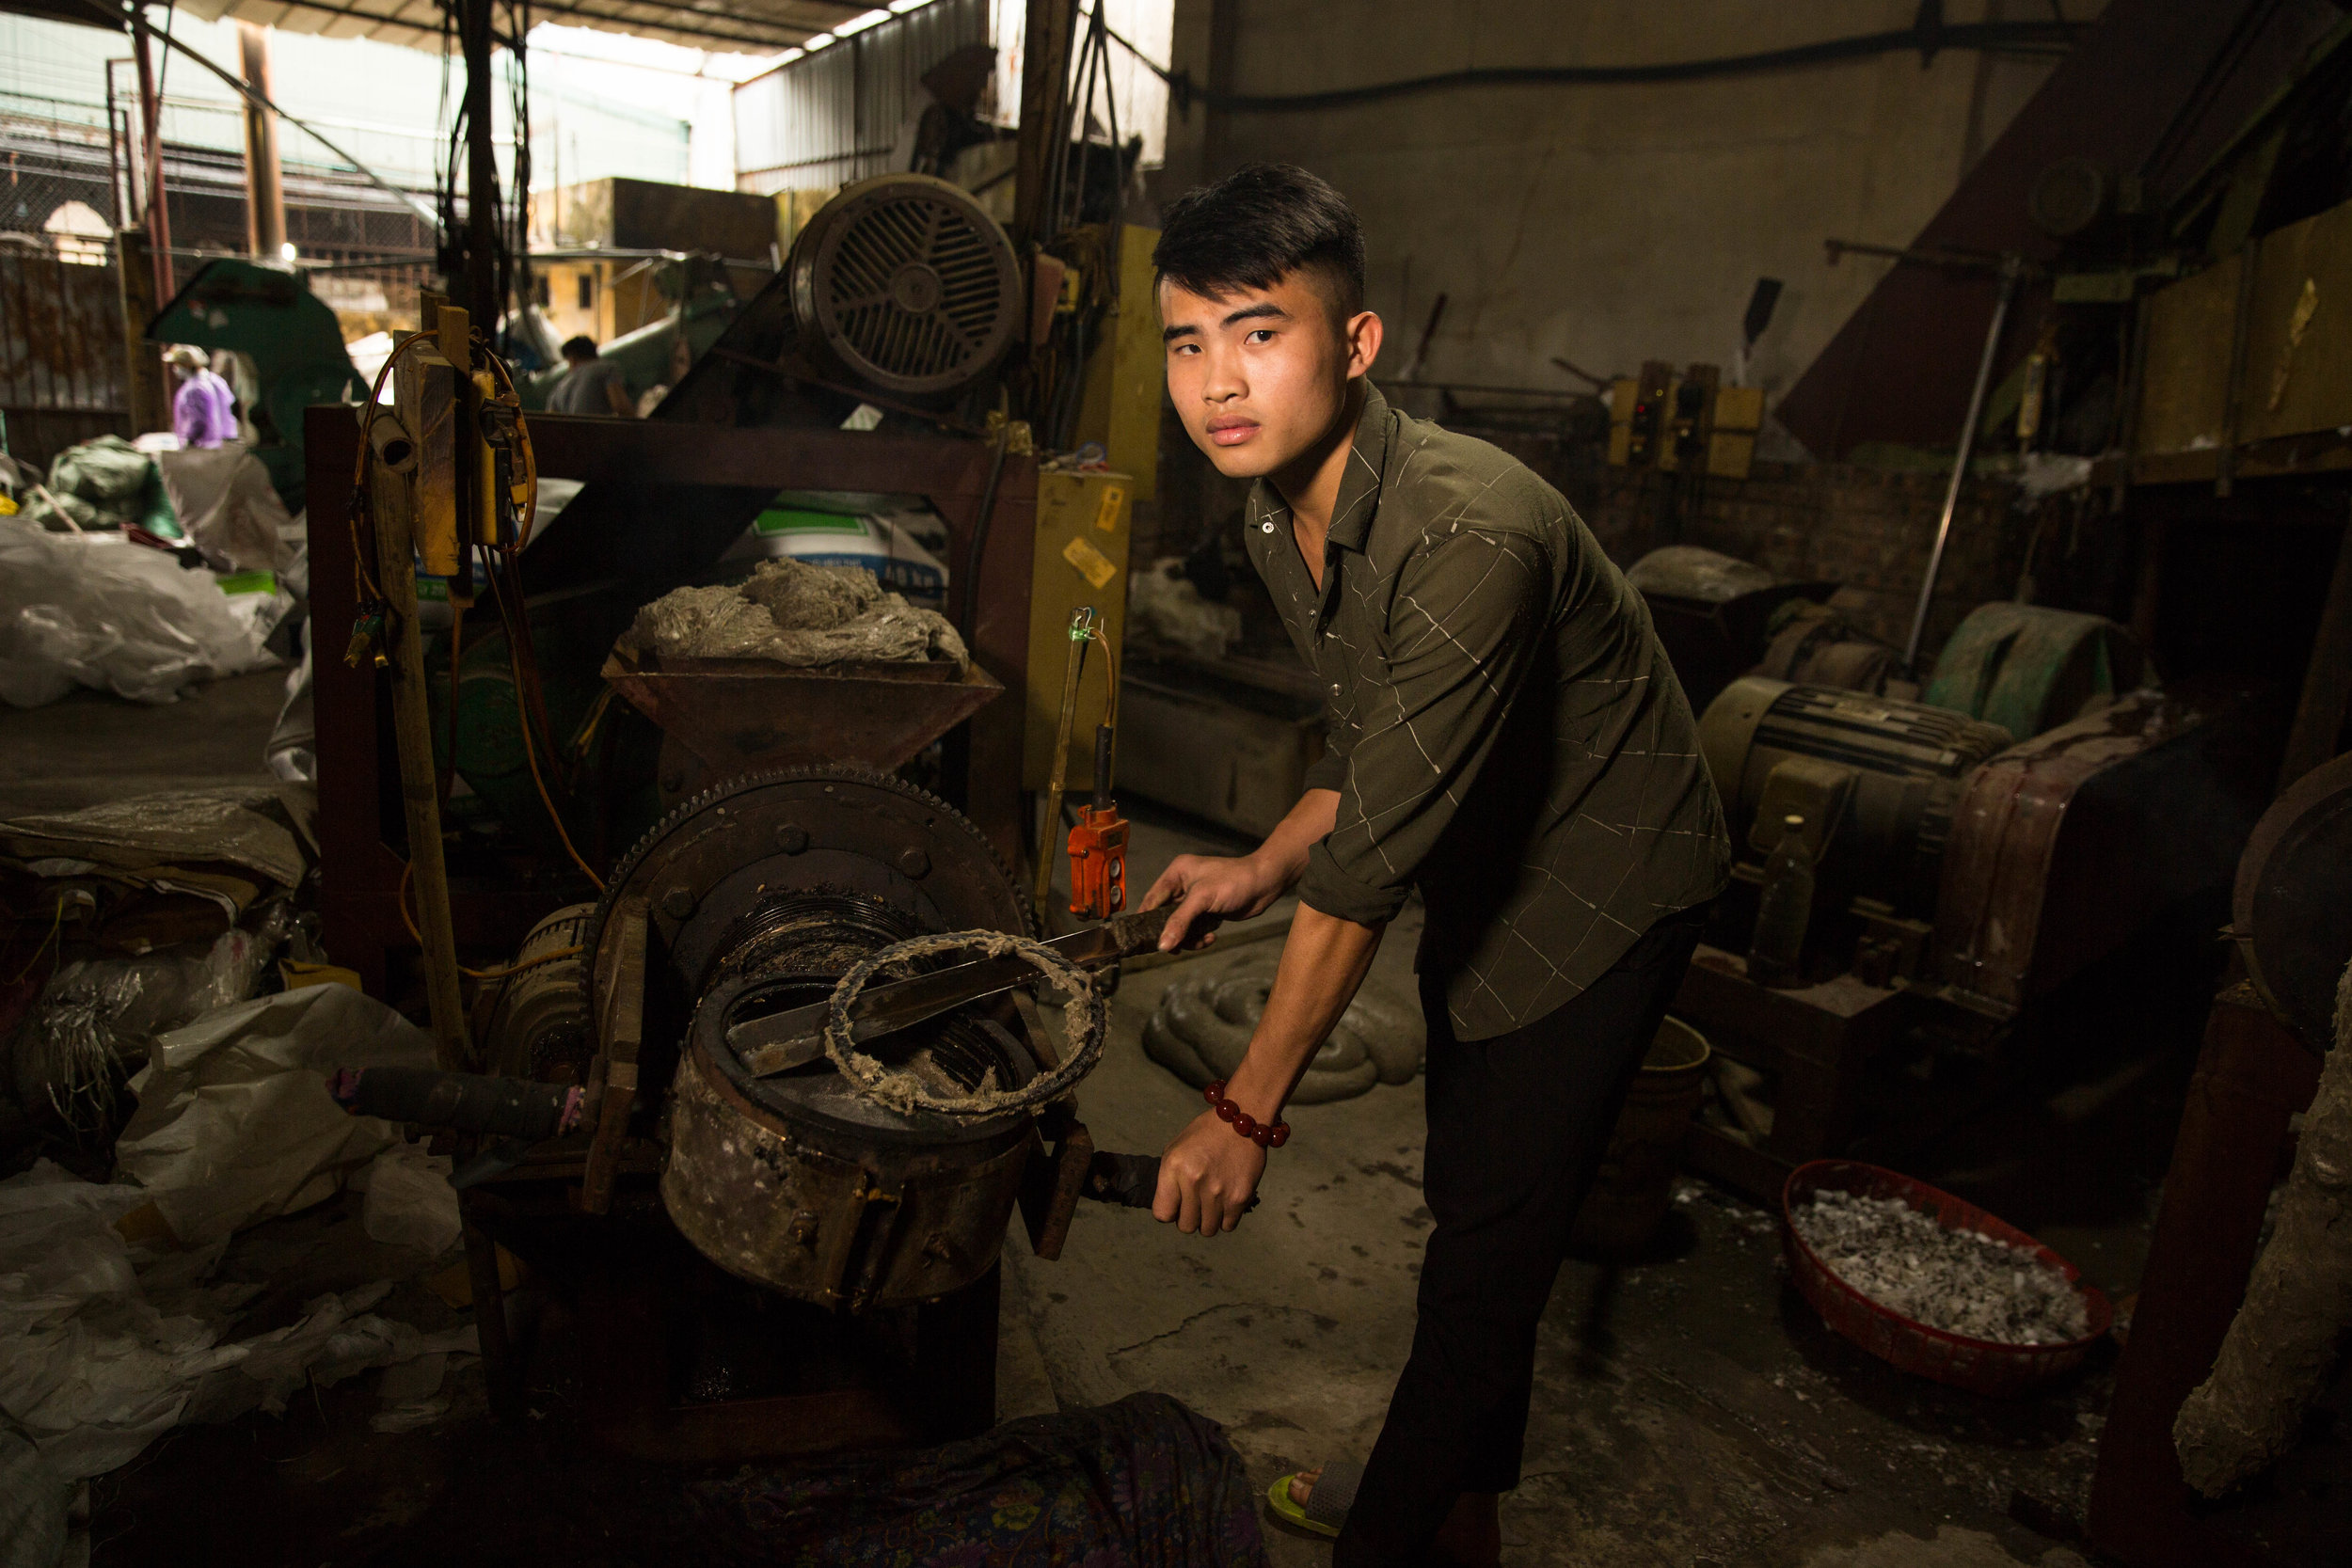 Lo Van Dinh, 21, operates a machine to melt plastics in Minh Khai, Vietnam, on Thursday, Jan. 17, 2019. The village is a hub for recycling both domestic and foreign plastics.